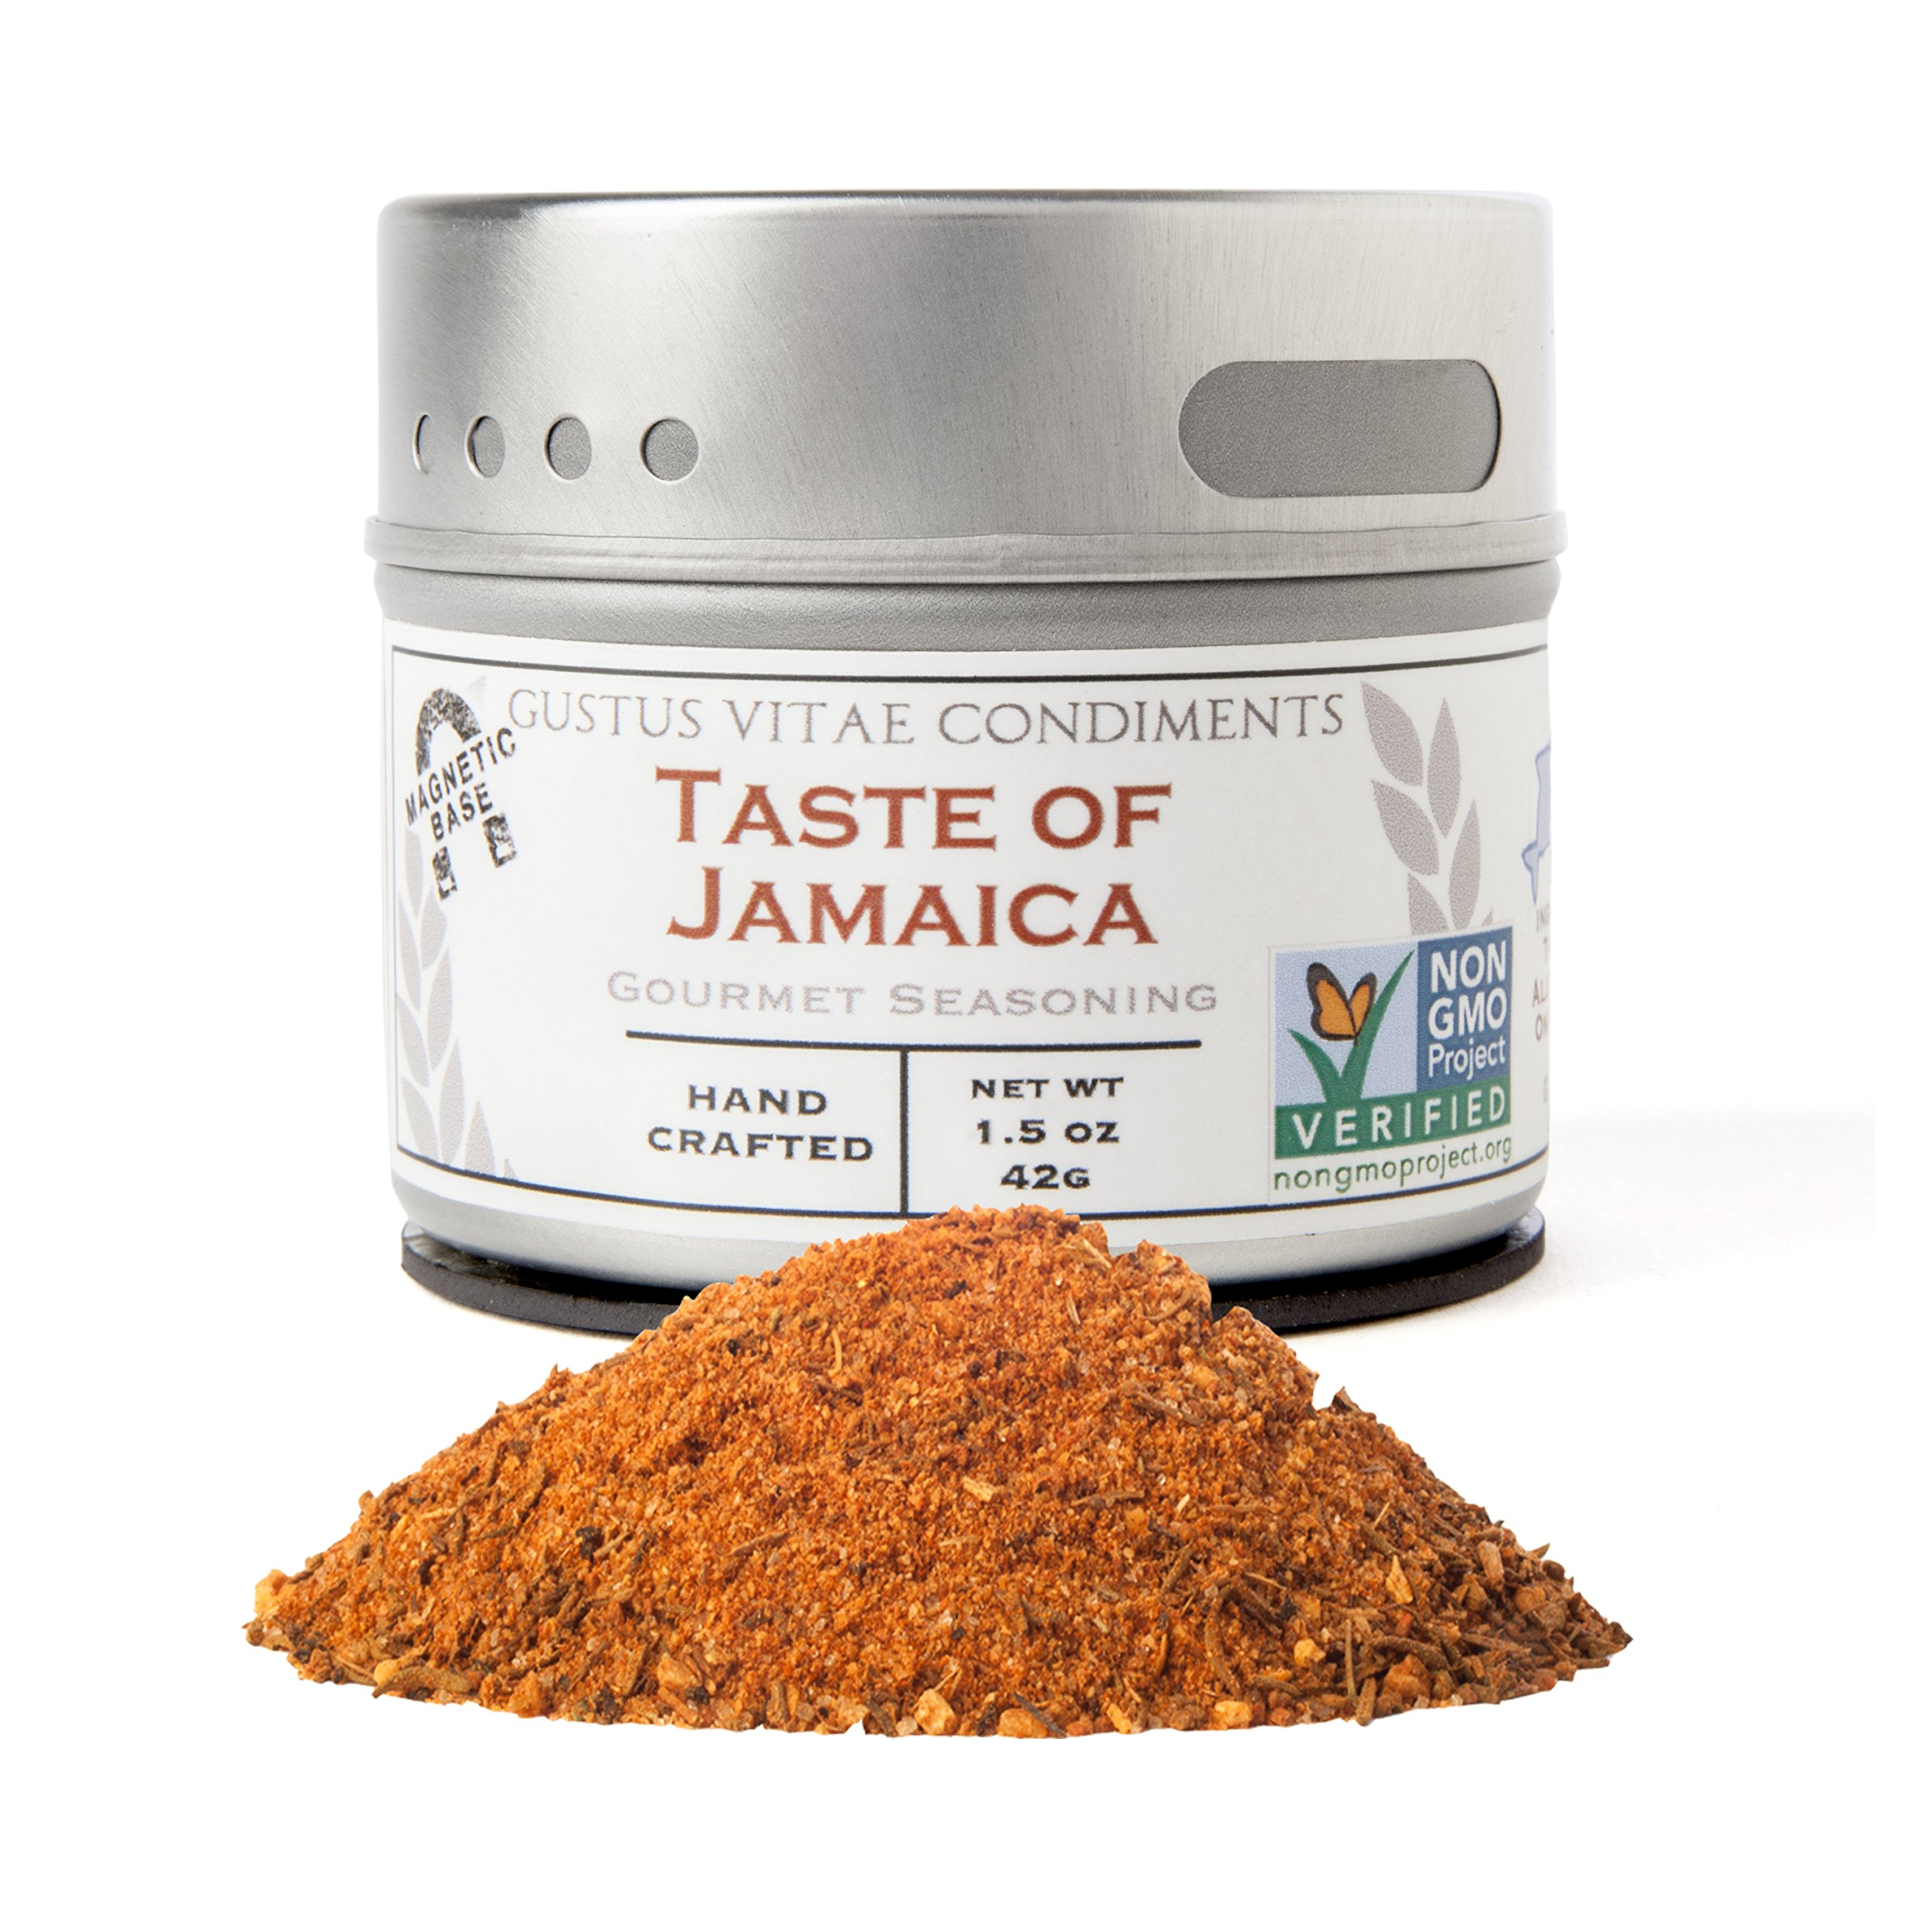 Taste of Jamaica Seasoning | Non GMO Verified | Magnetic Tin | Gourmet Spice Blend | 1.5oz | Crafted in Small Batches by Gustus Vitae | #56